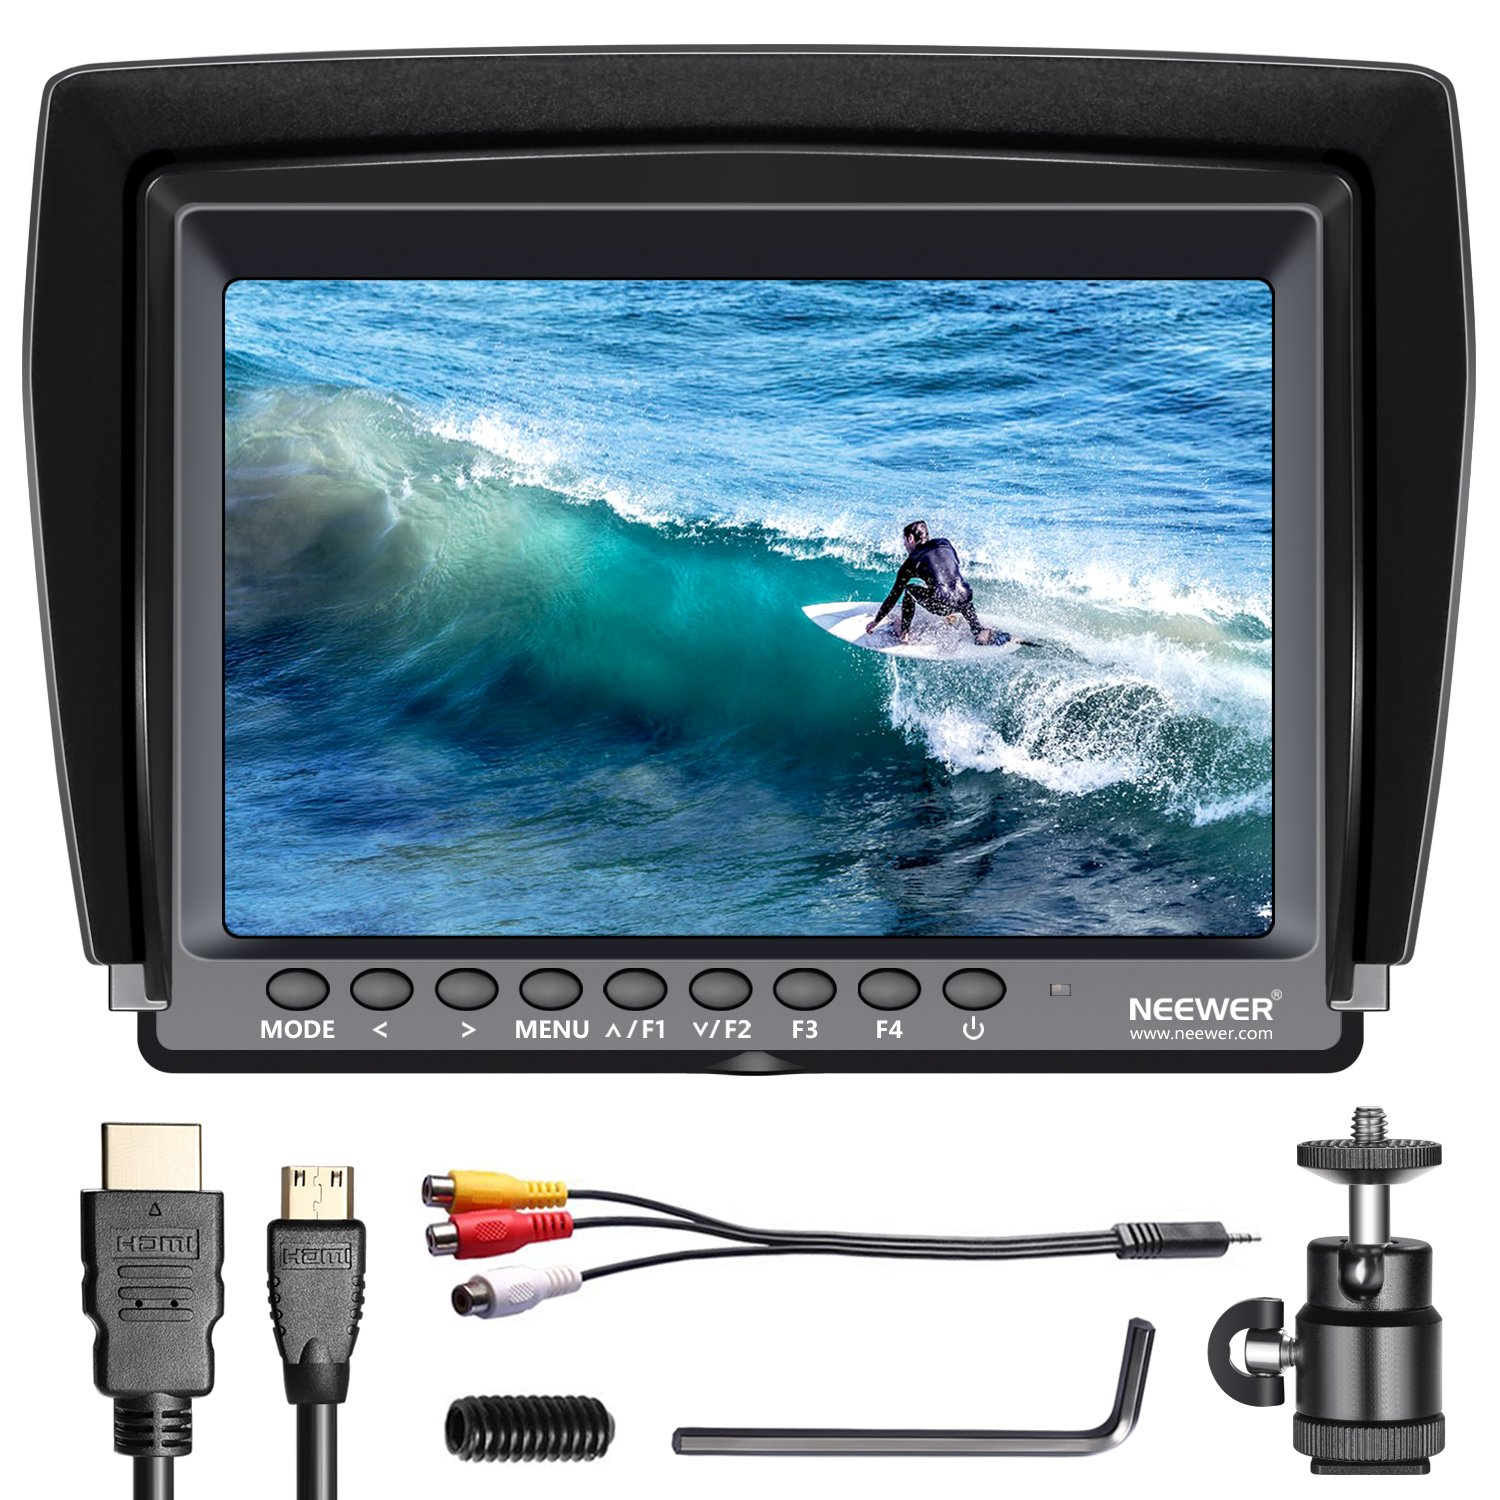 Neewer F100 7-inch 1280x800 IPS Screen Camera Field Monitor support 4k input with HDMI Cable for BMPCC,AV Cable for FPV, 16:10 or 4:3 Adjustable Display Ratio for DSLR/Camcorder(Battery NOT included) by Neewer